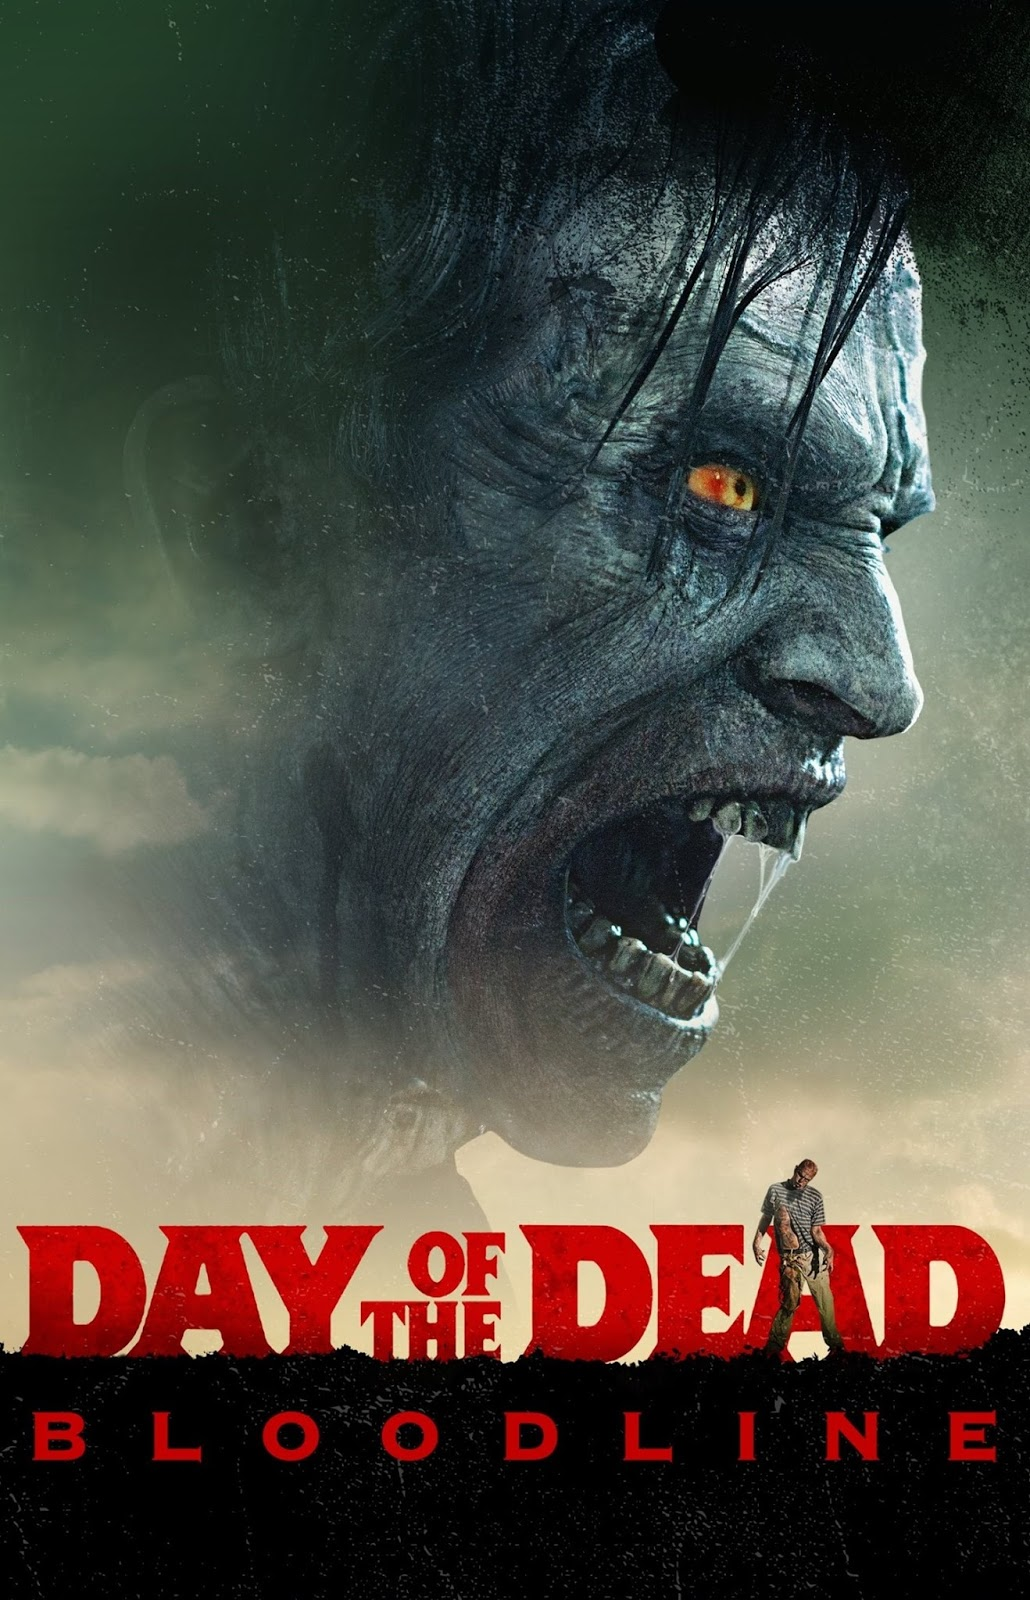 Day of the Dead: Bloodline [2018] [DVDR] [NTSC] [Latino]